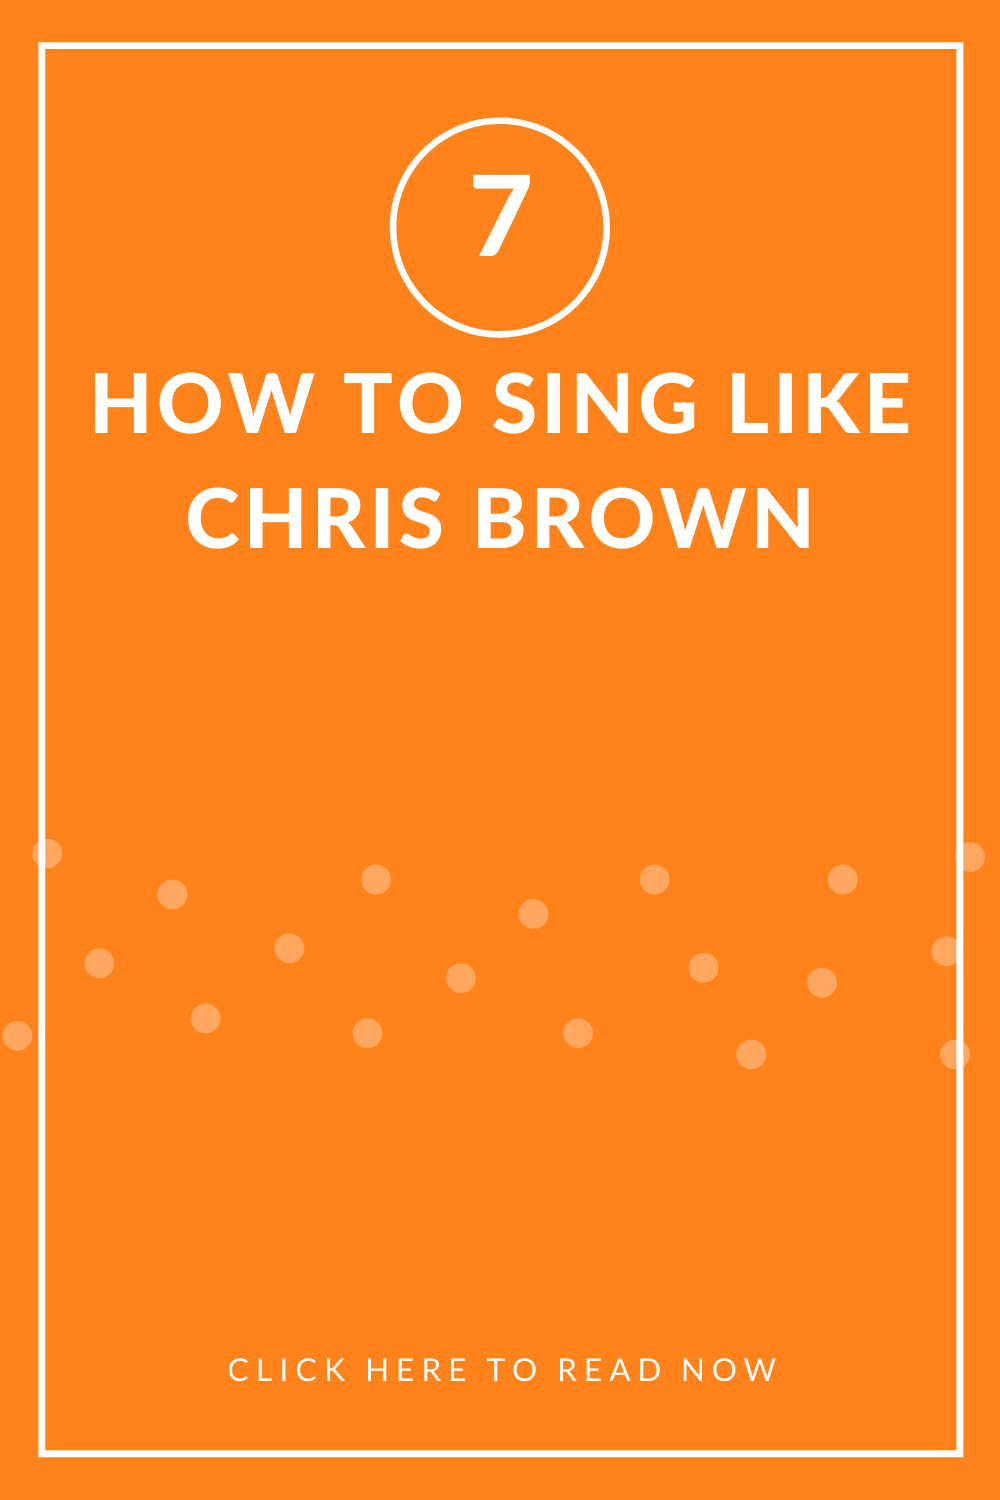 How To Sing Like Chris Brown Music And Entertainment Chris Brown Chris Brown Music Singing